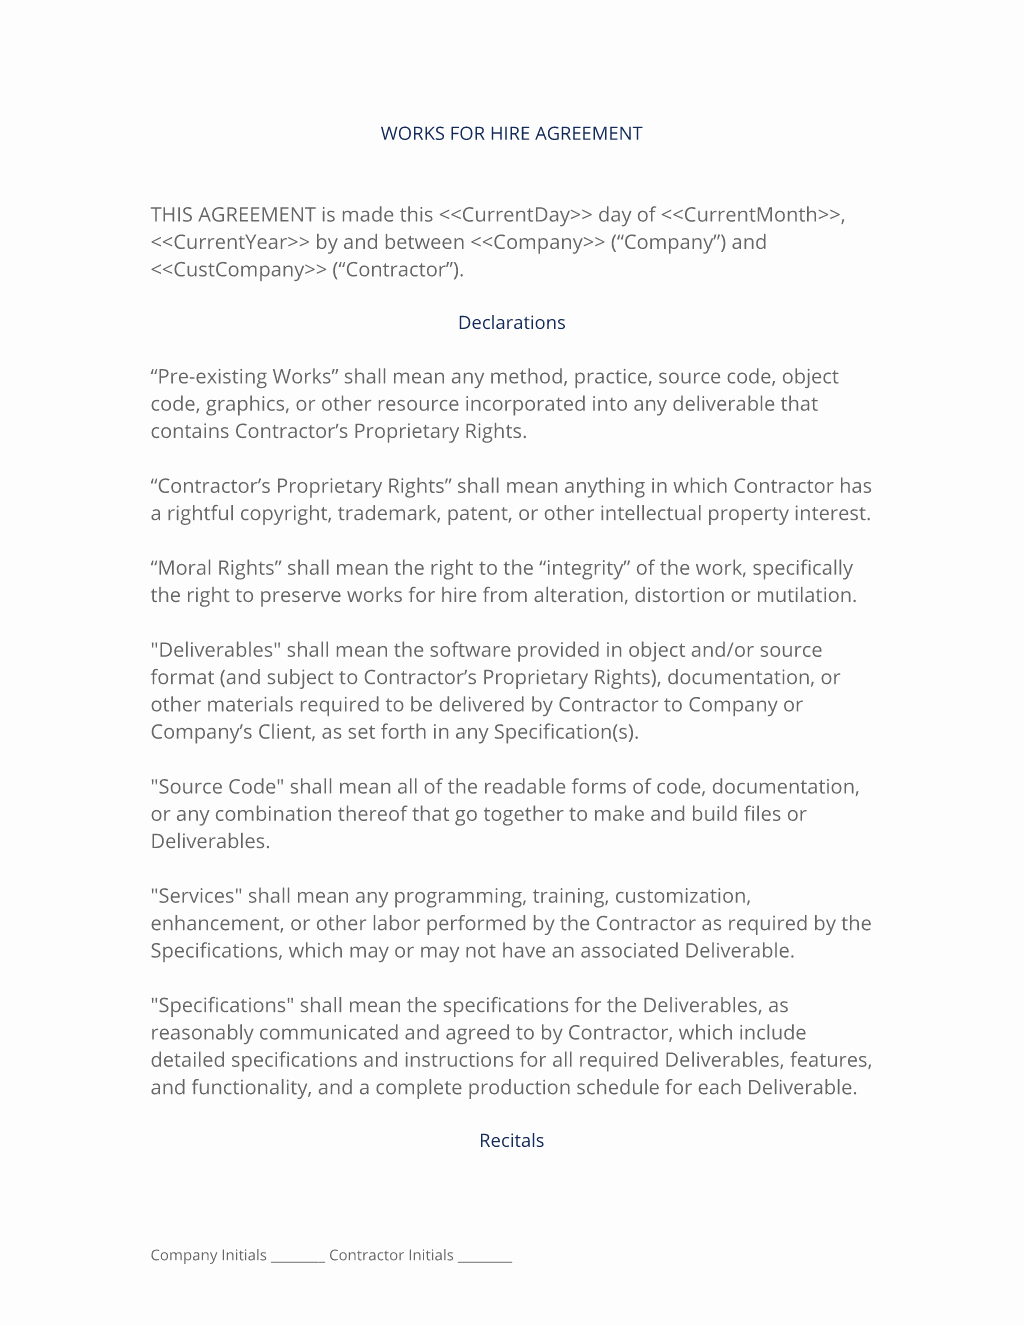 Work for Hire Agreement Template Fresh Works for Hire Agreement